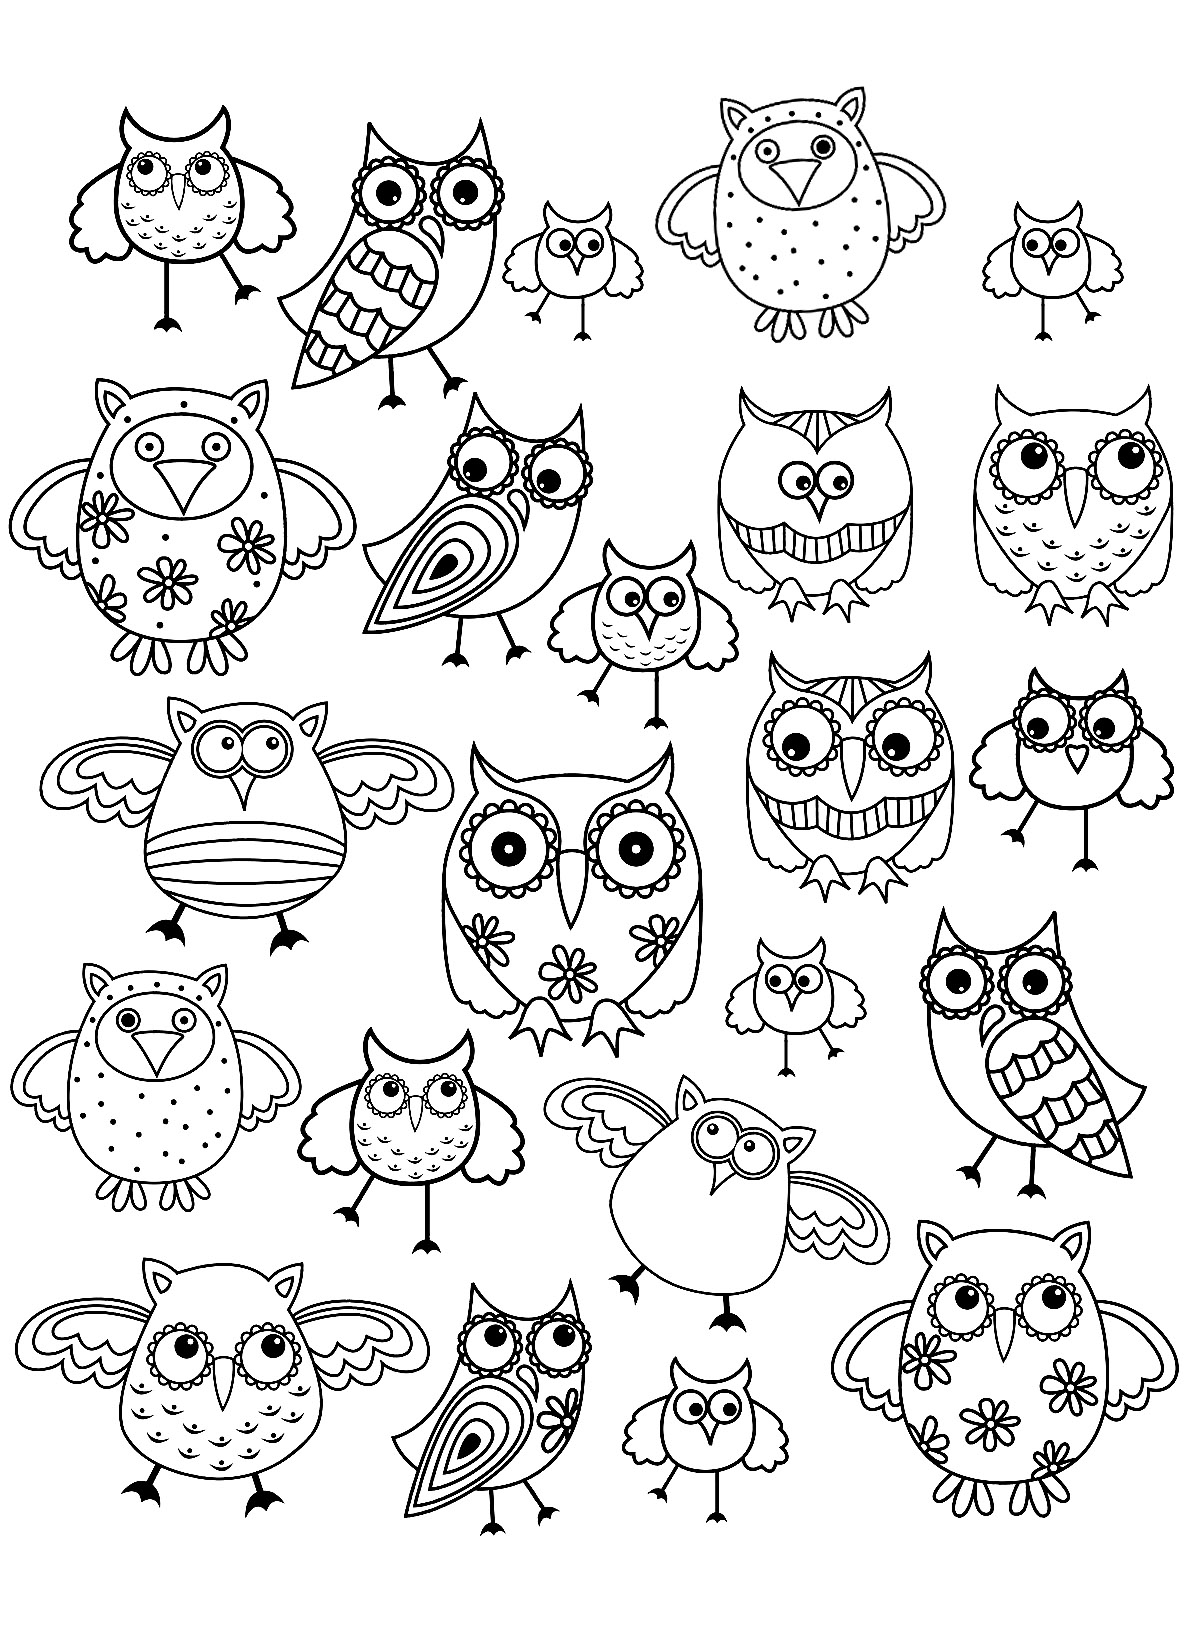 doodle art / doodling - coloring pages for adults